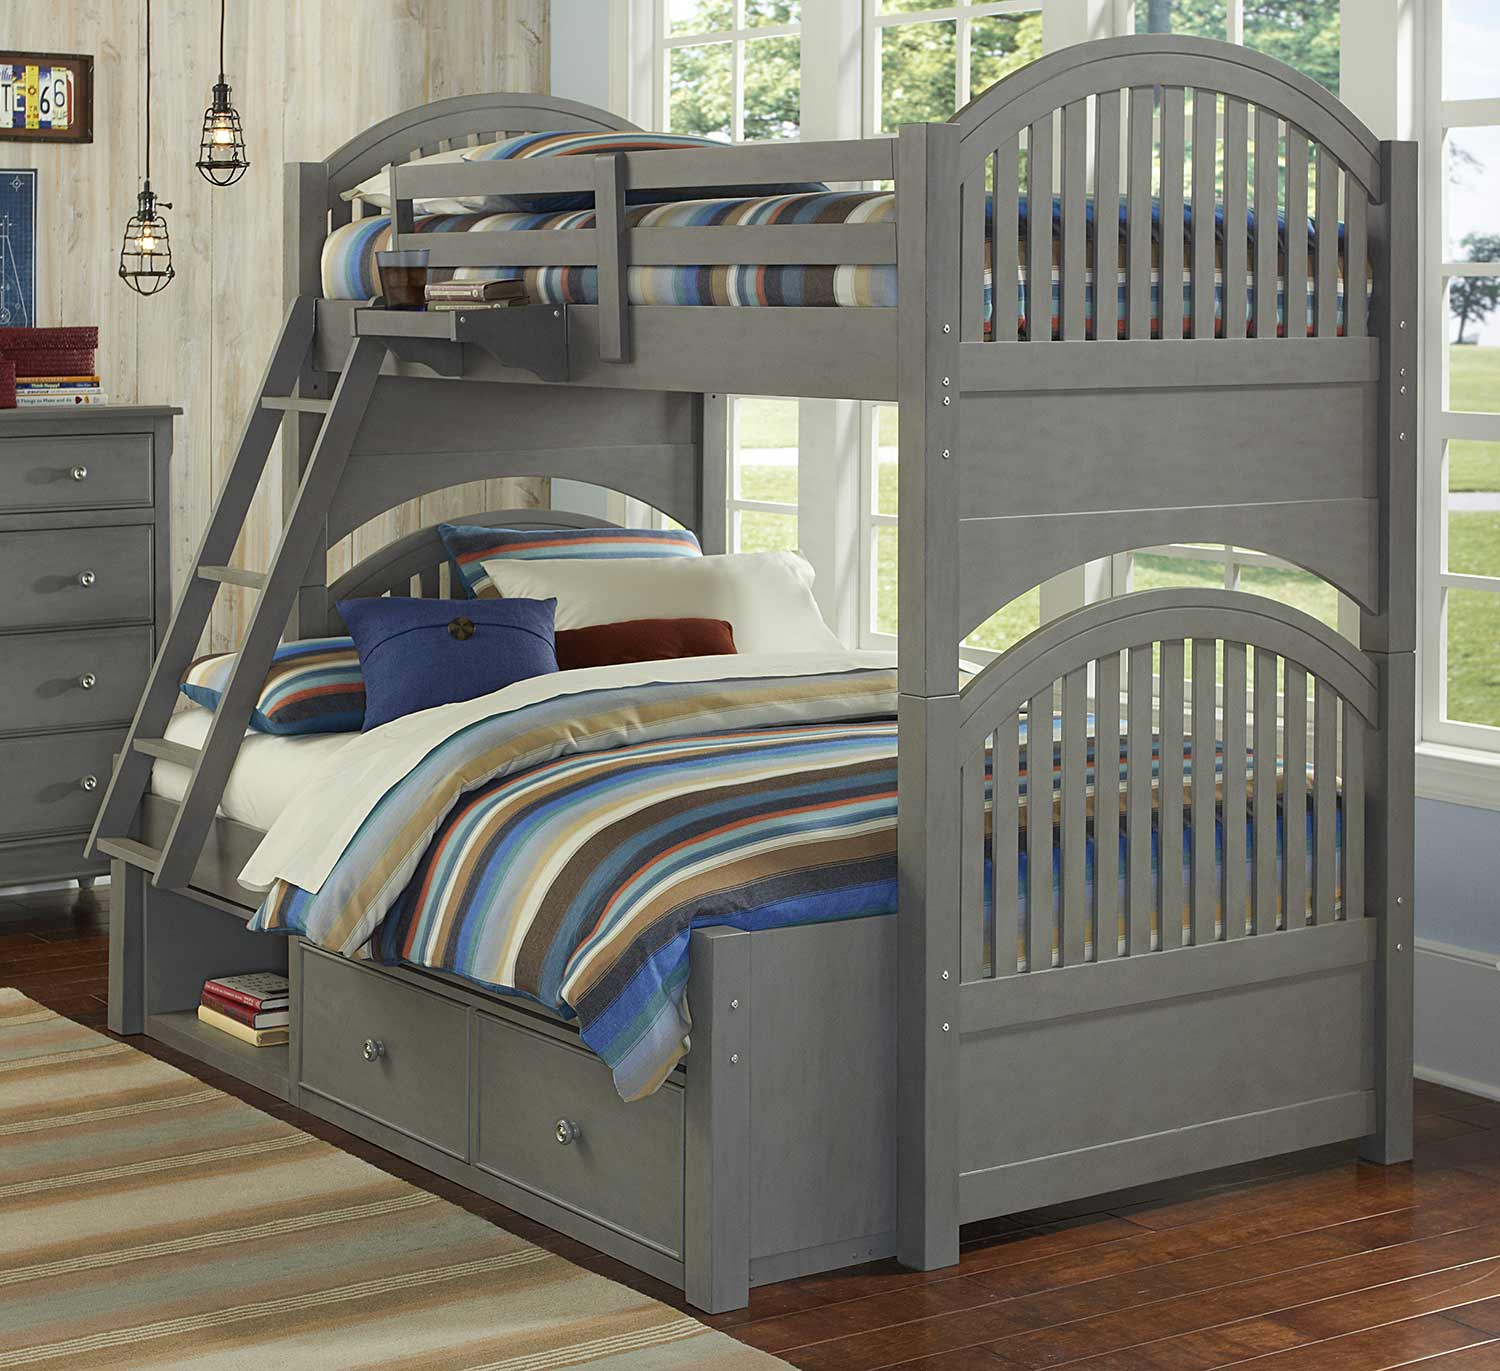 NE Kids Lake House Adrian Twin Over Full Bunk With Storage - Stone